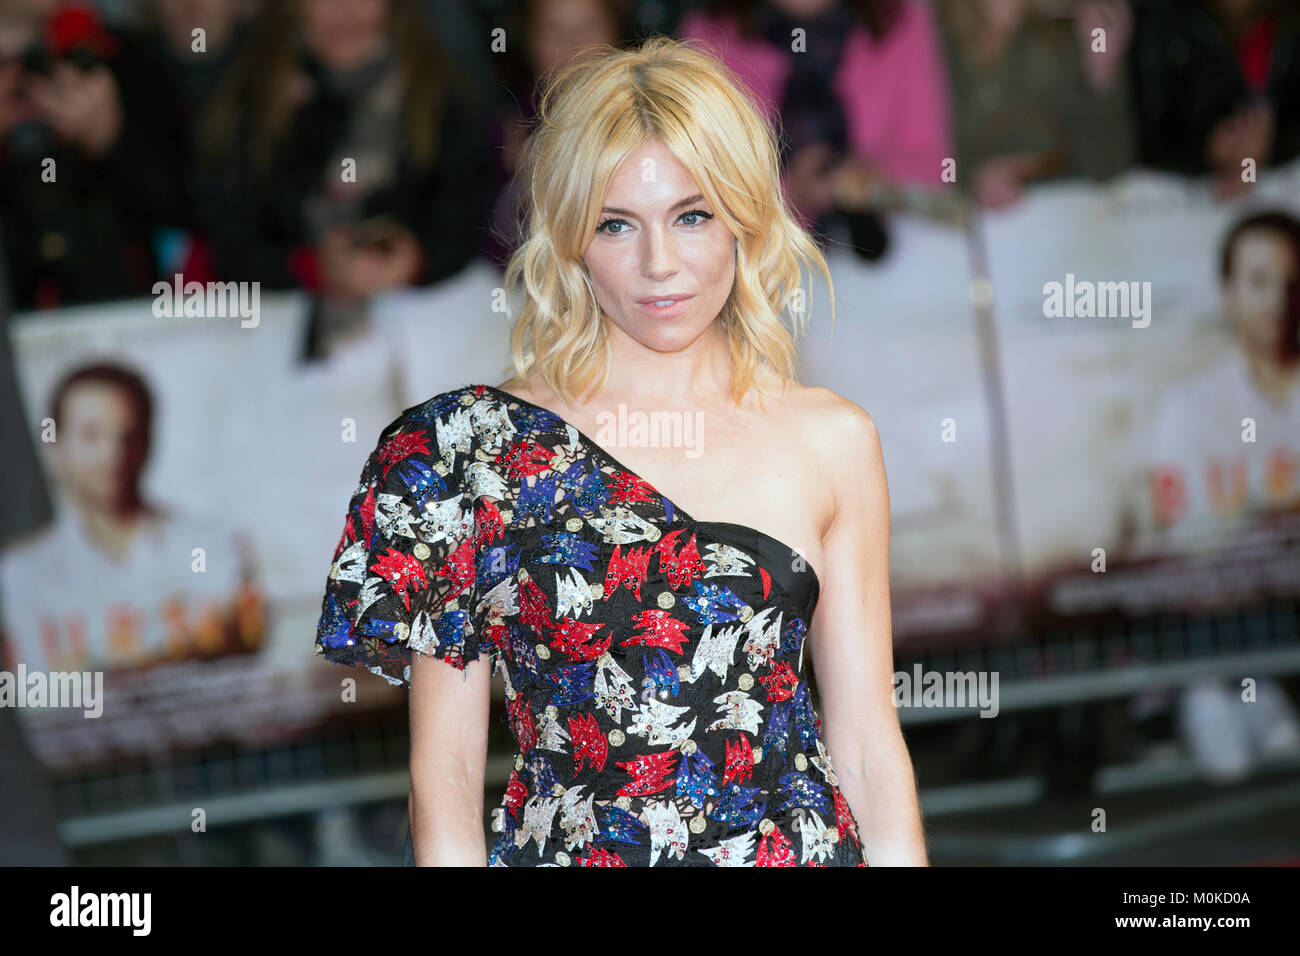 "London, UK, 28 October 2015, Sienna Miller, European Film premiere of ""Burnt"" at Vue West End Cinema. Mariusz Goslicki/Alamy Stock Photo"